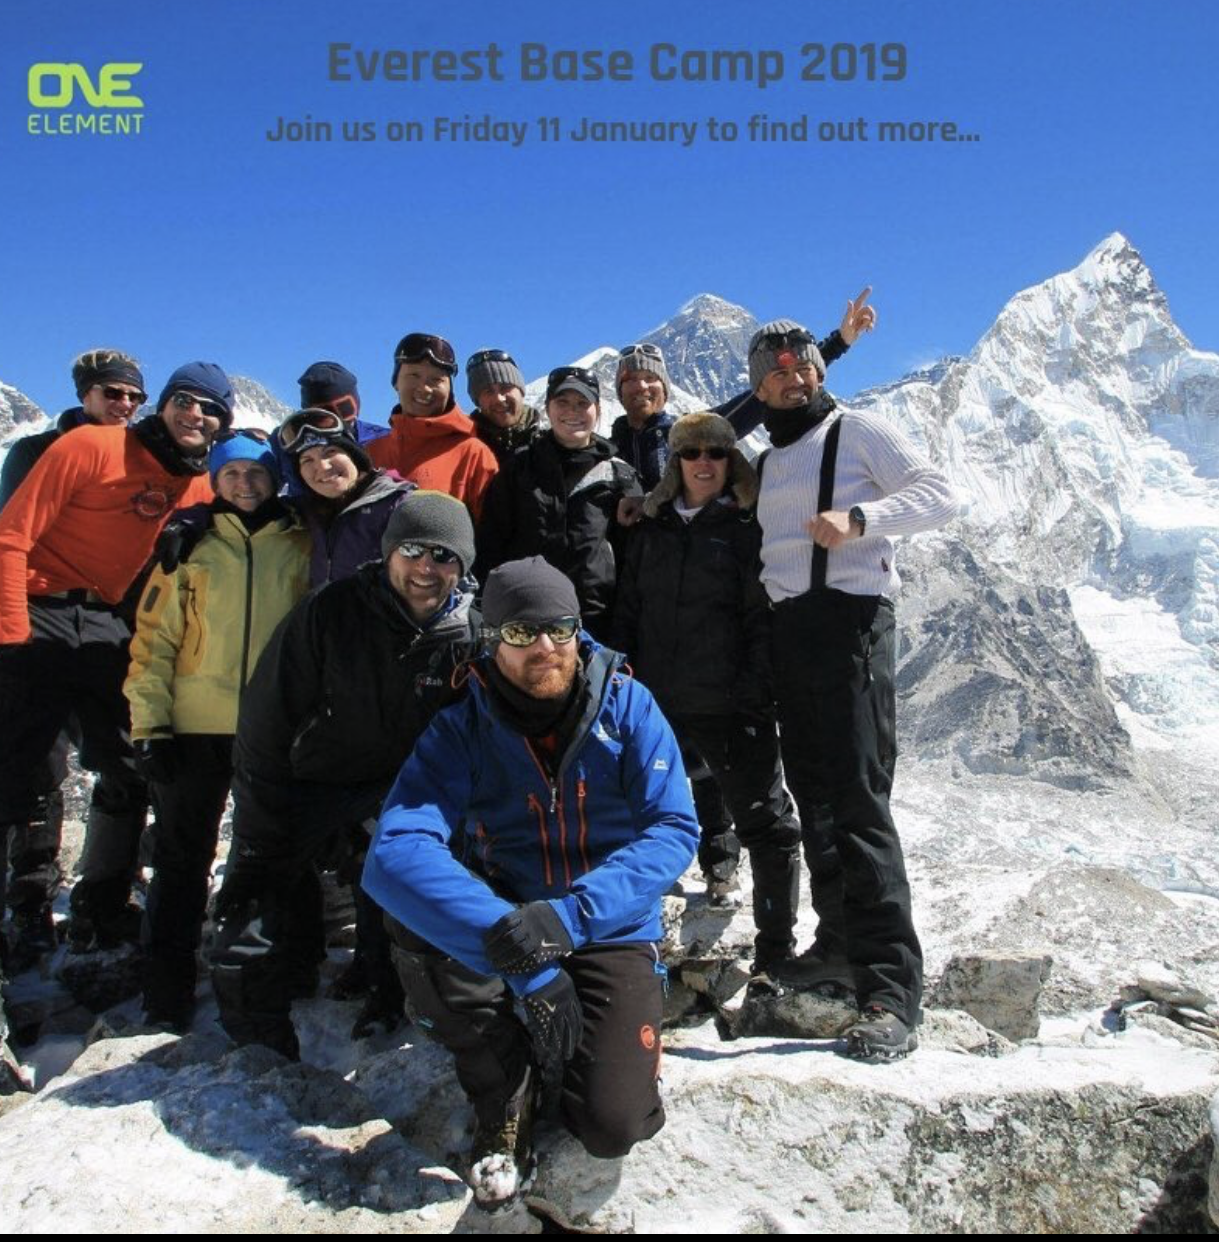 Everest Base Camp meeting – Friday 11th January 2019